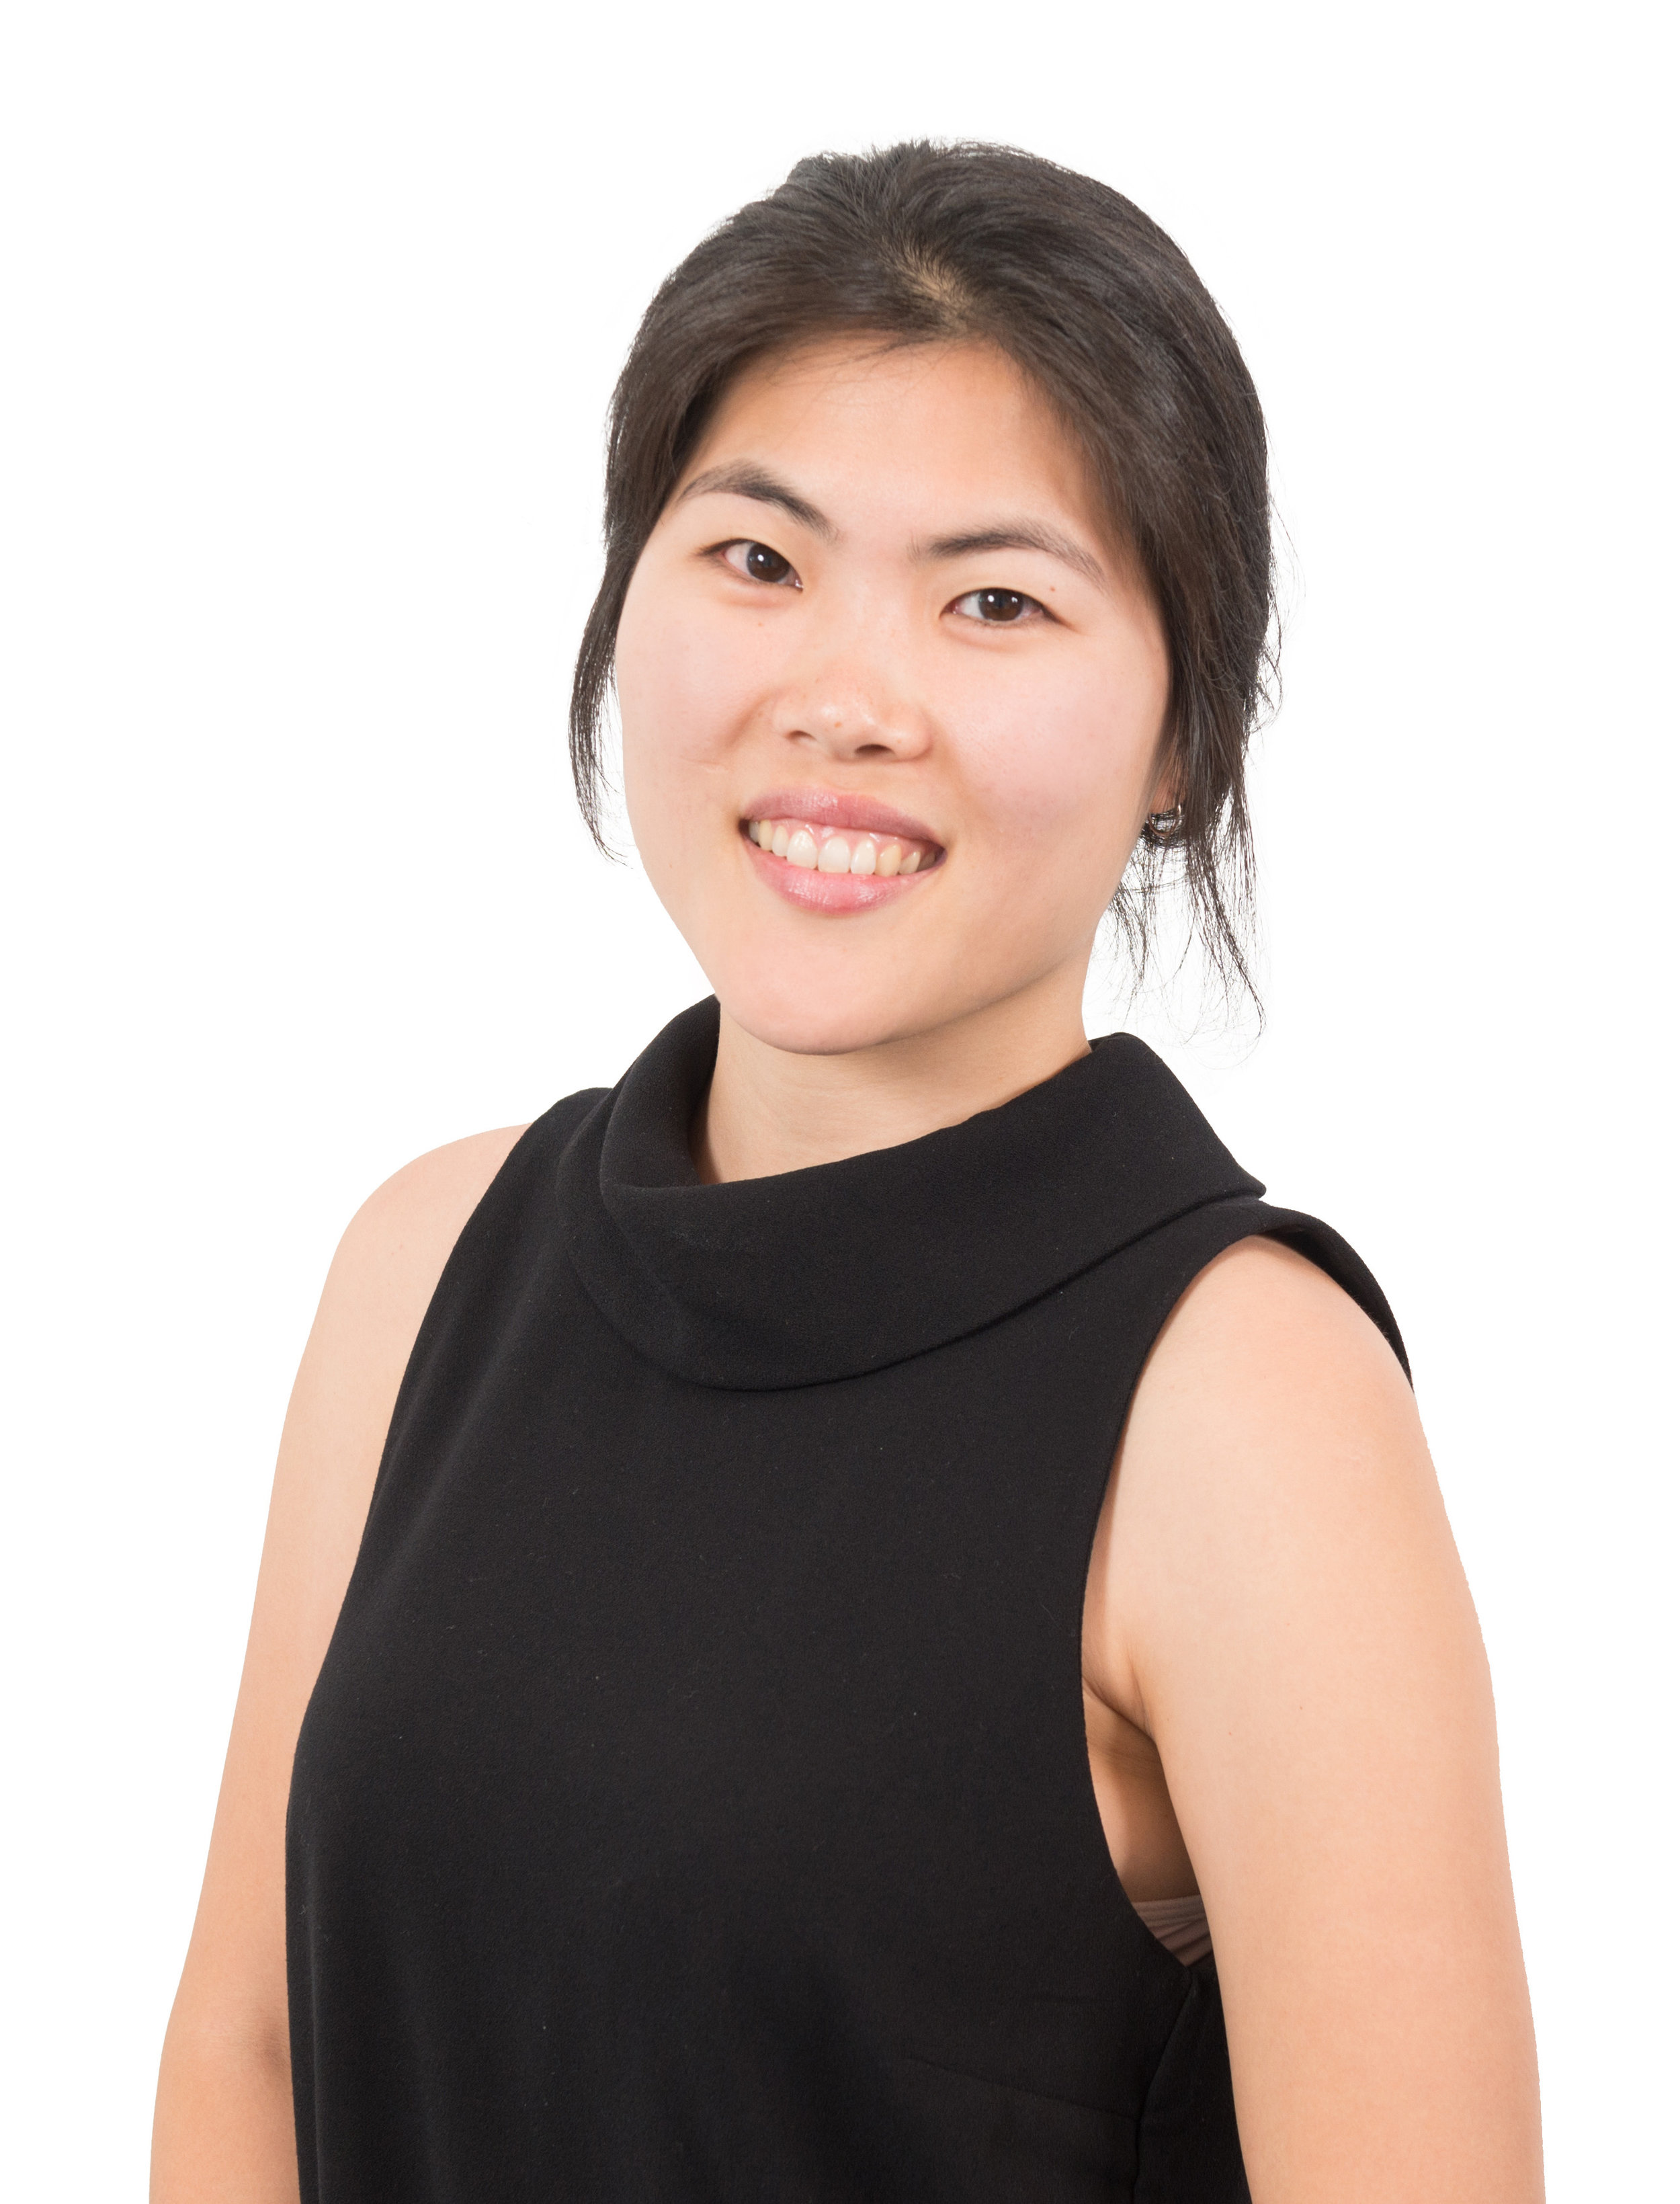 Jiwon Kim   Hub Manager and Research Engineer   The University of Queensland